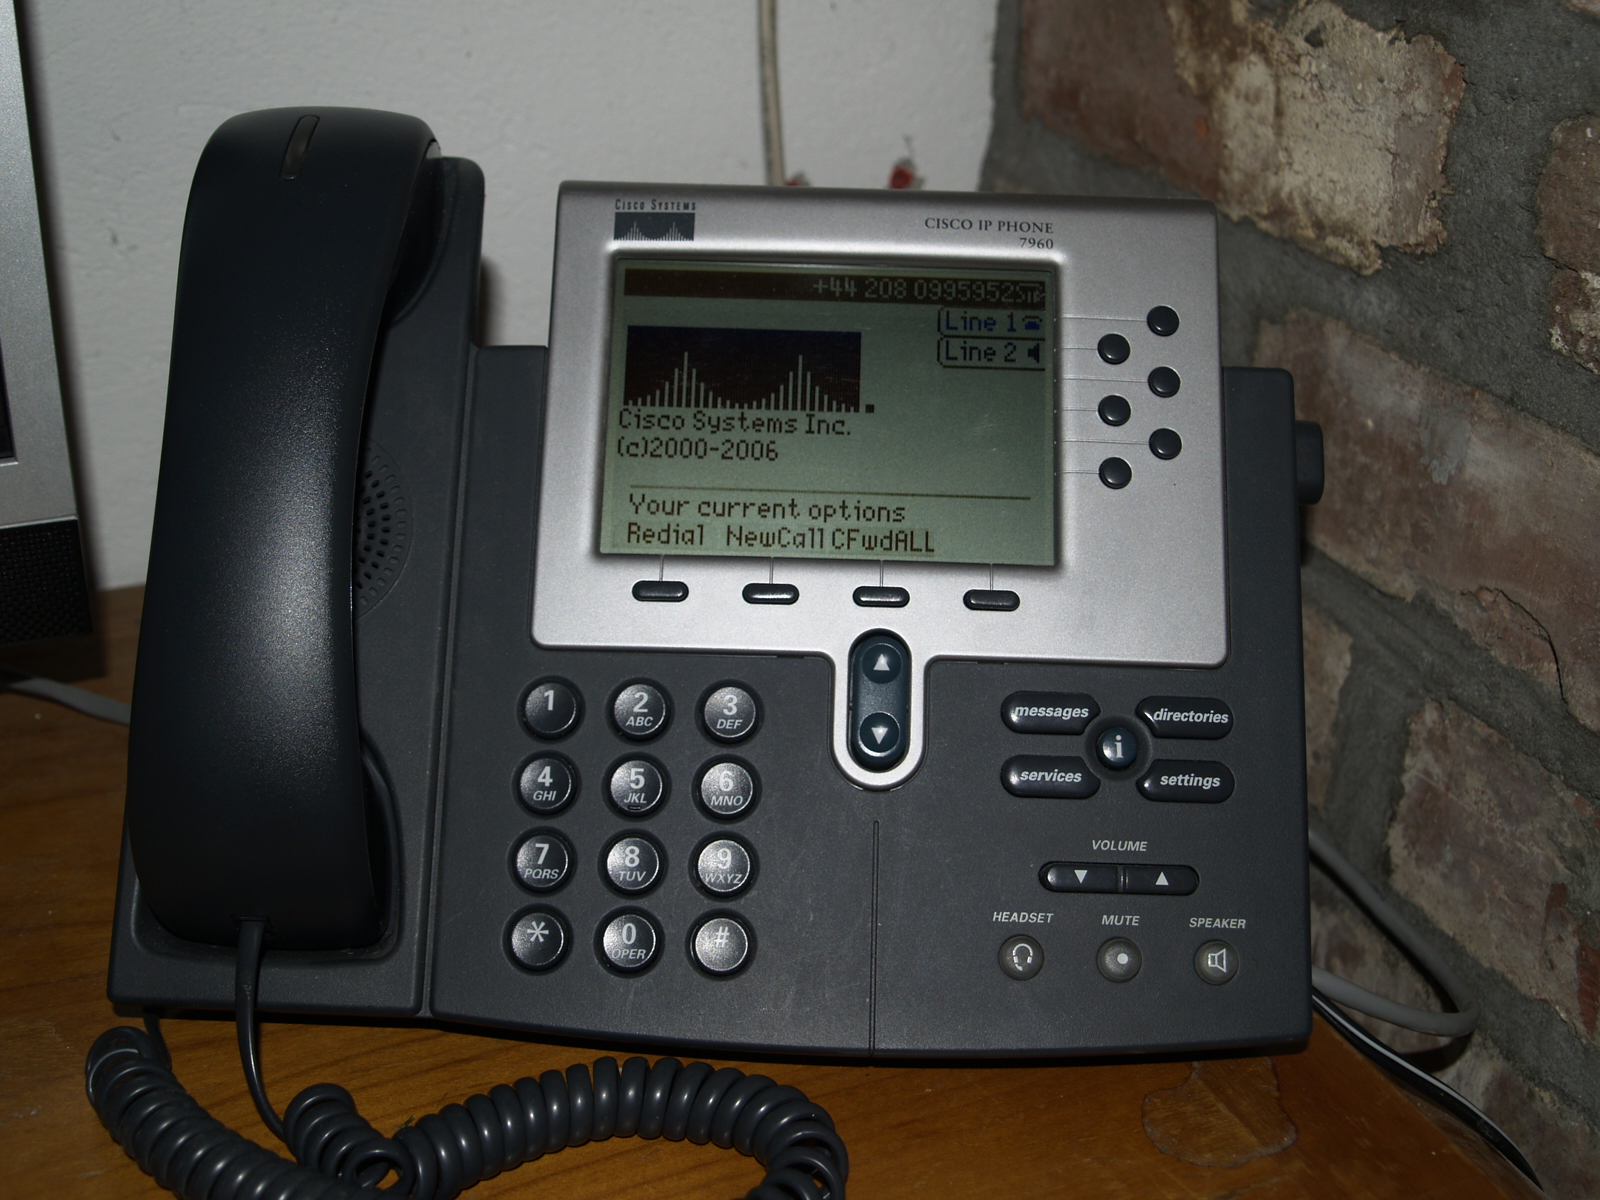 commercialtelephone,withkeypad,controlkeys,andscreenfunctionstoperformconfigurationanduserfeatures.